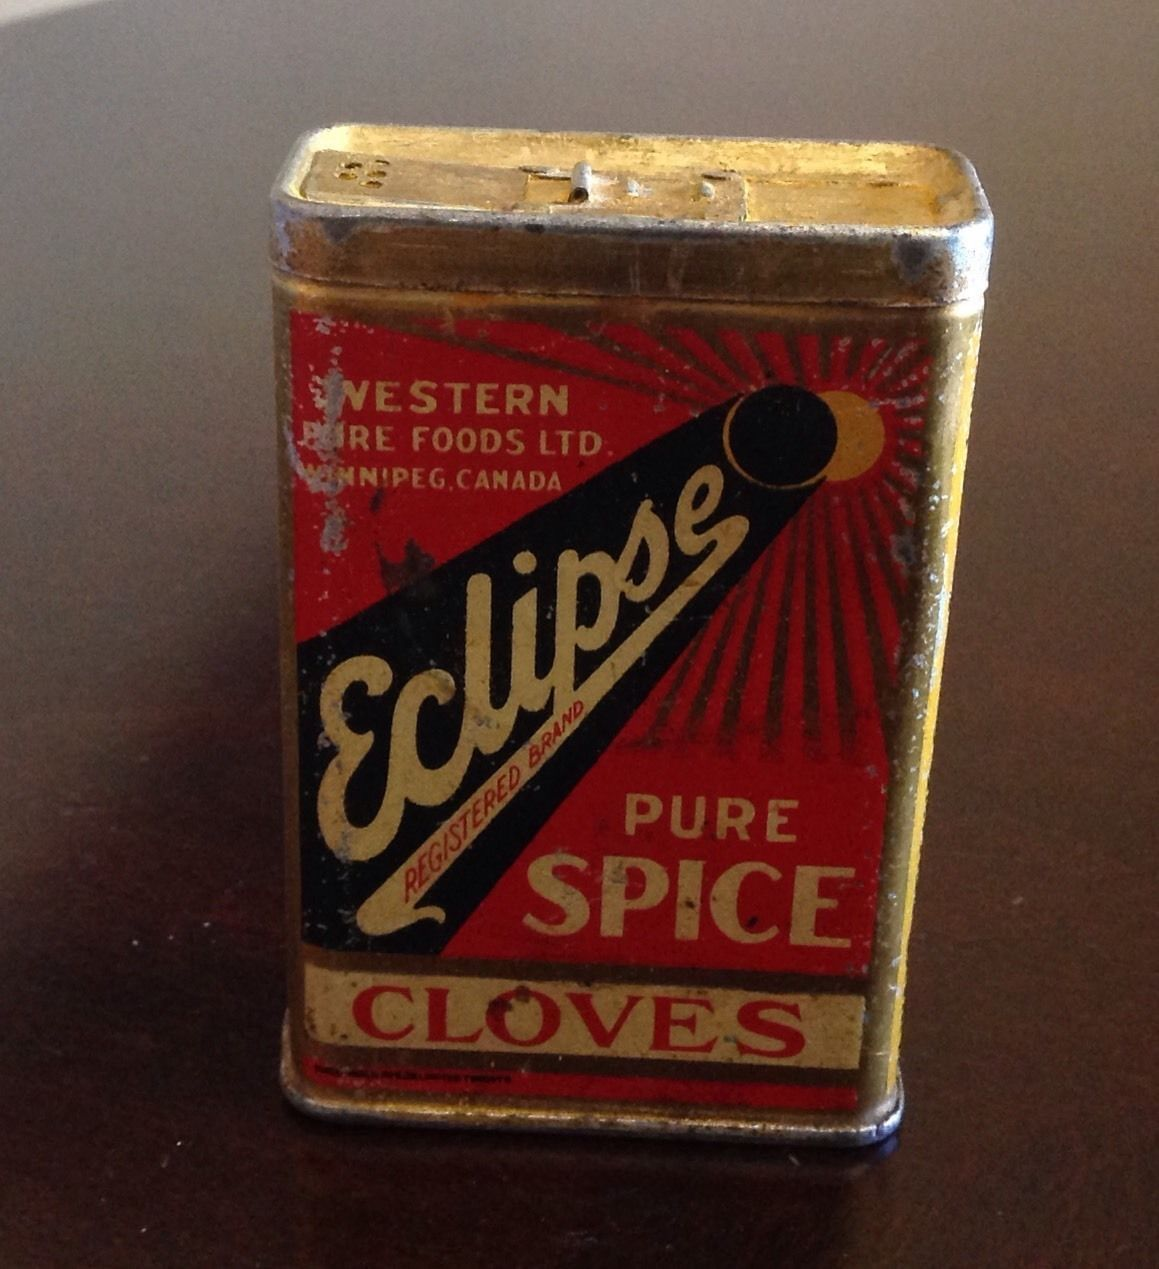 Vintage Eclipse Spice Tin Cloves Turmeric RARE Western Pure Foods Ltd Winnipeg | eBay